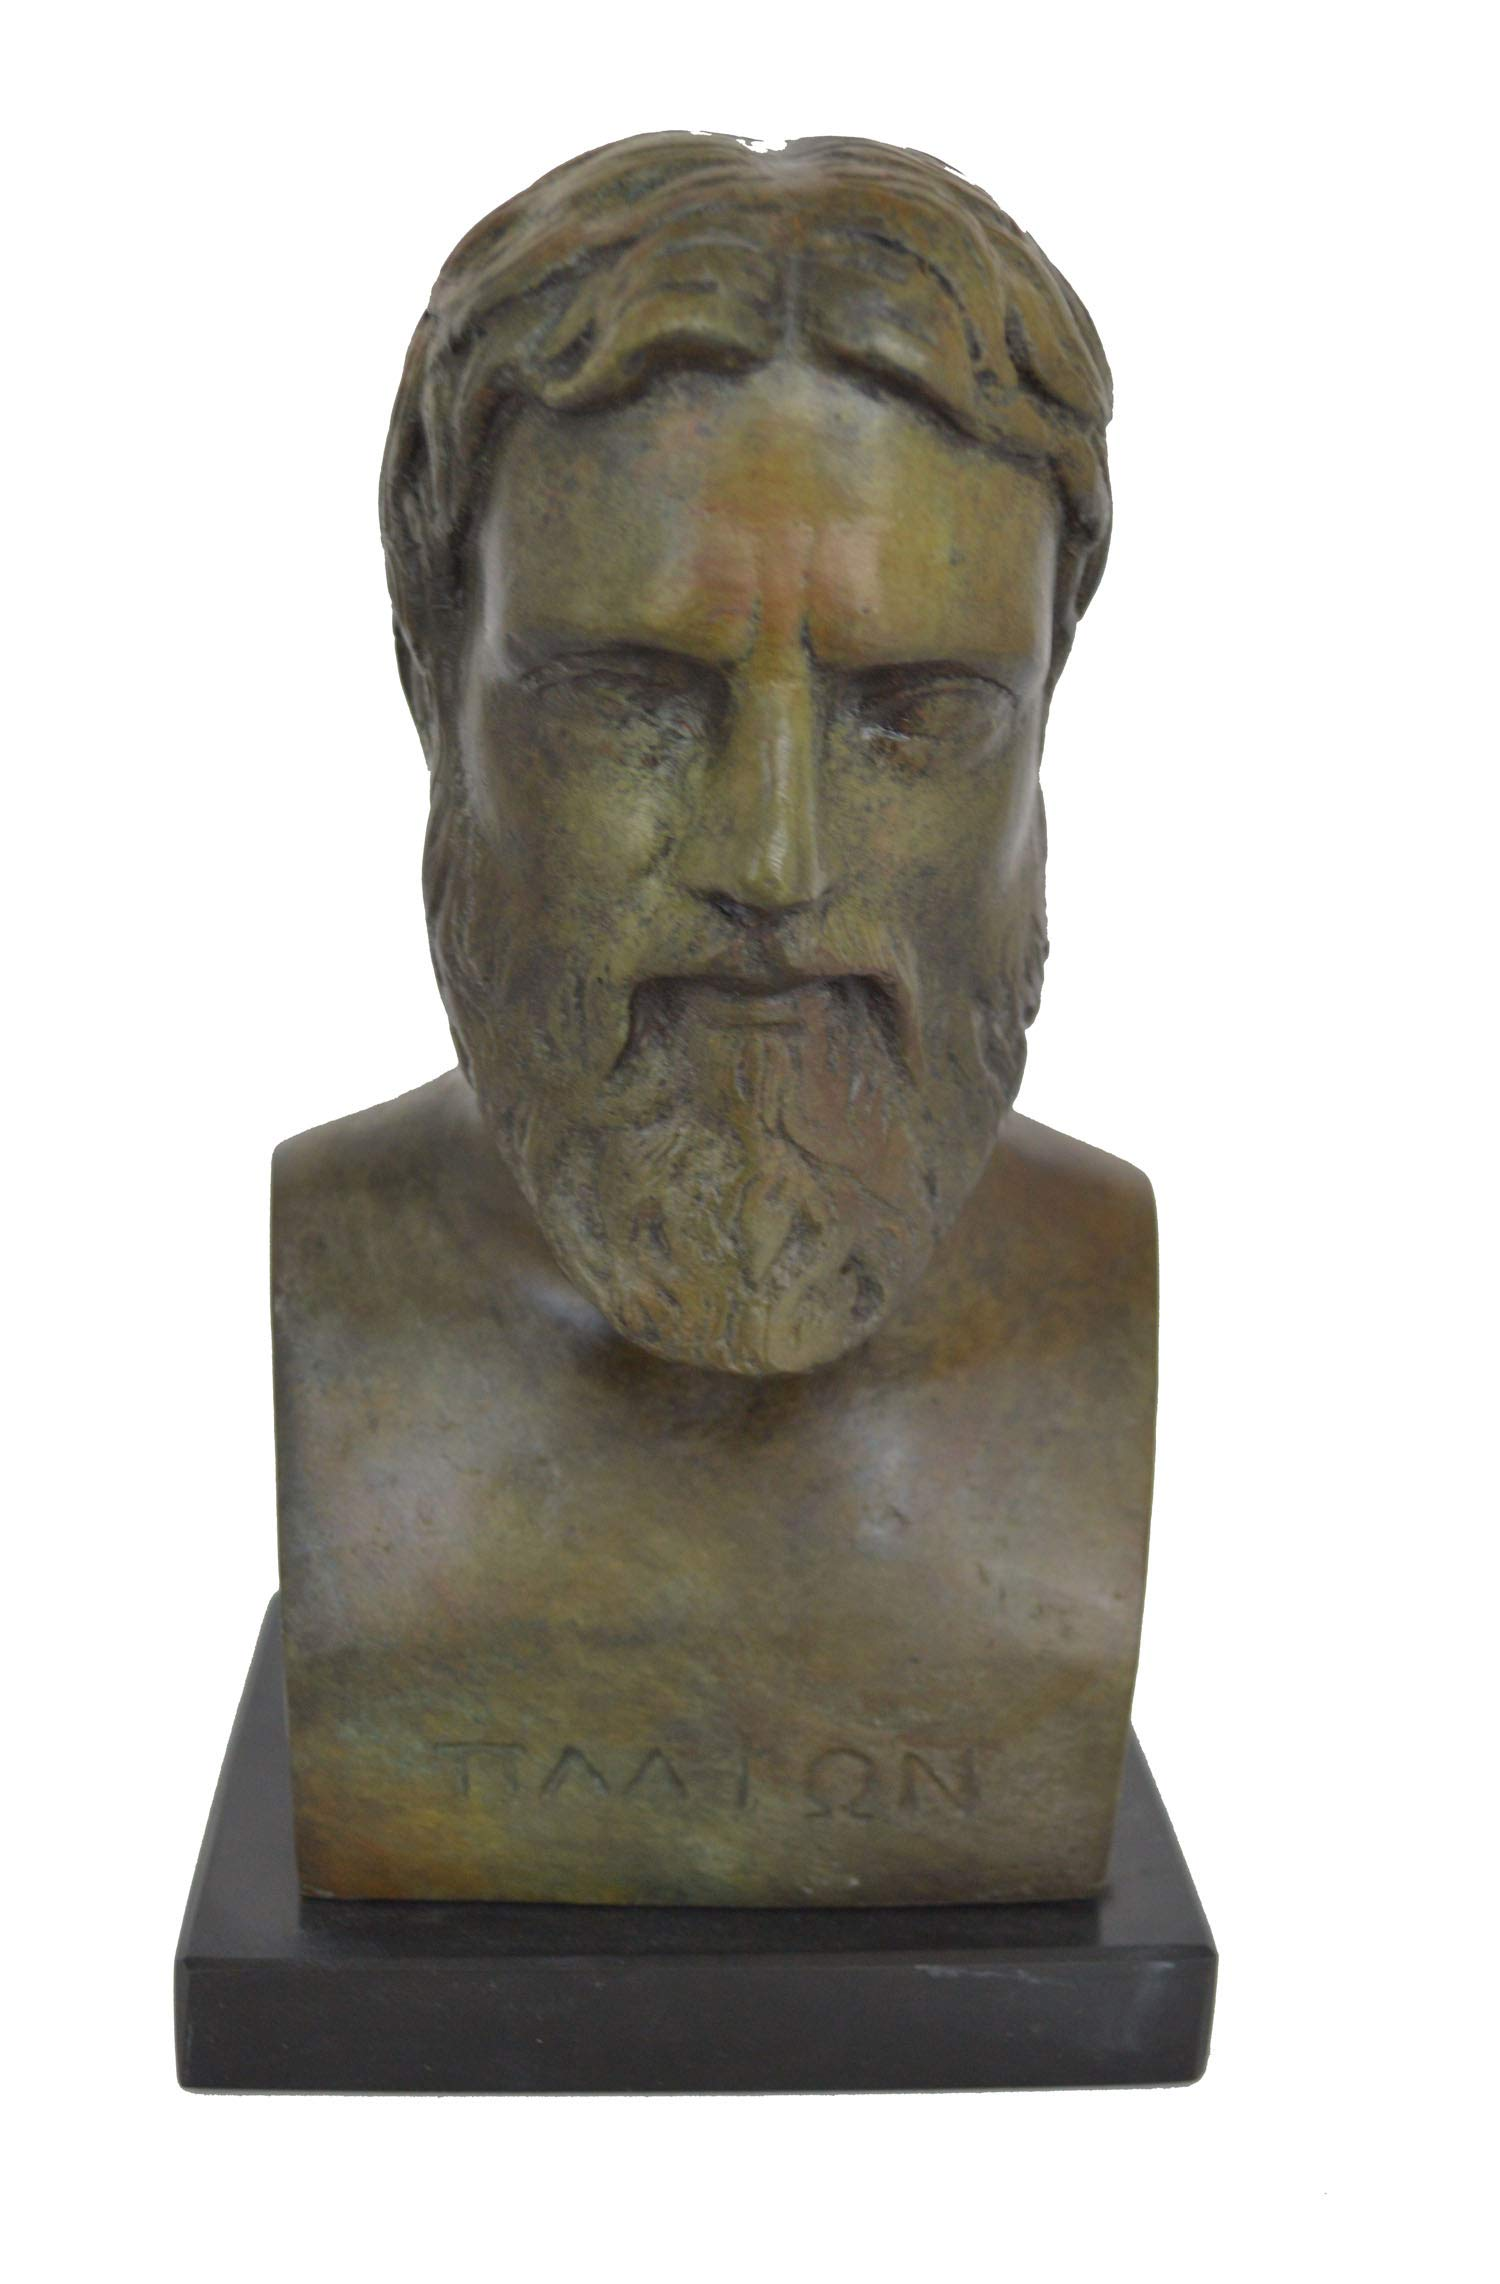 Hand Made Plato Bronze Bust - Greek Philosopher student of Socrates Unique Piece - Platon by Hand Made